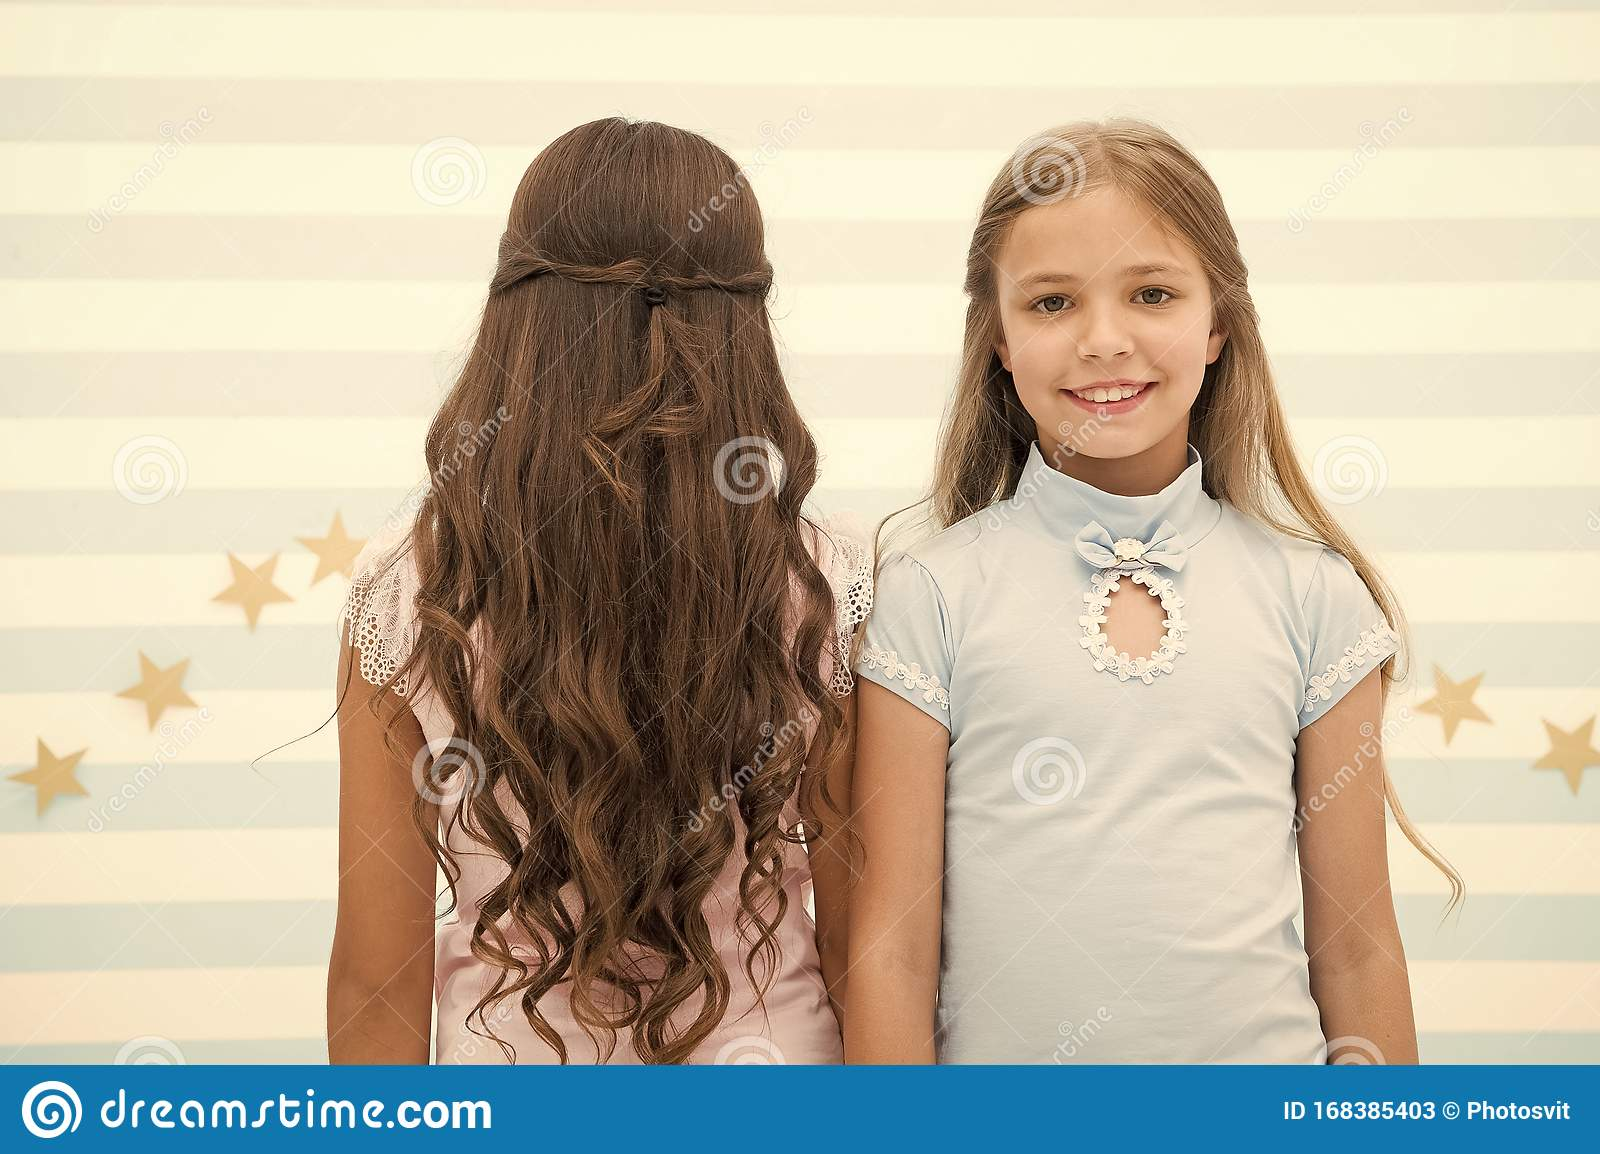 Best Hairstyles For Long Hair Cute Small Girls With Long Brunette And Blond Curls In Playroom Adorable Little Children Stock Image Image Of Female Care 168385403